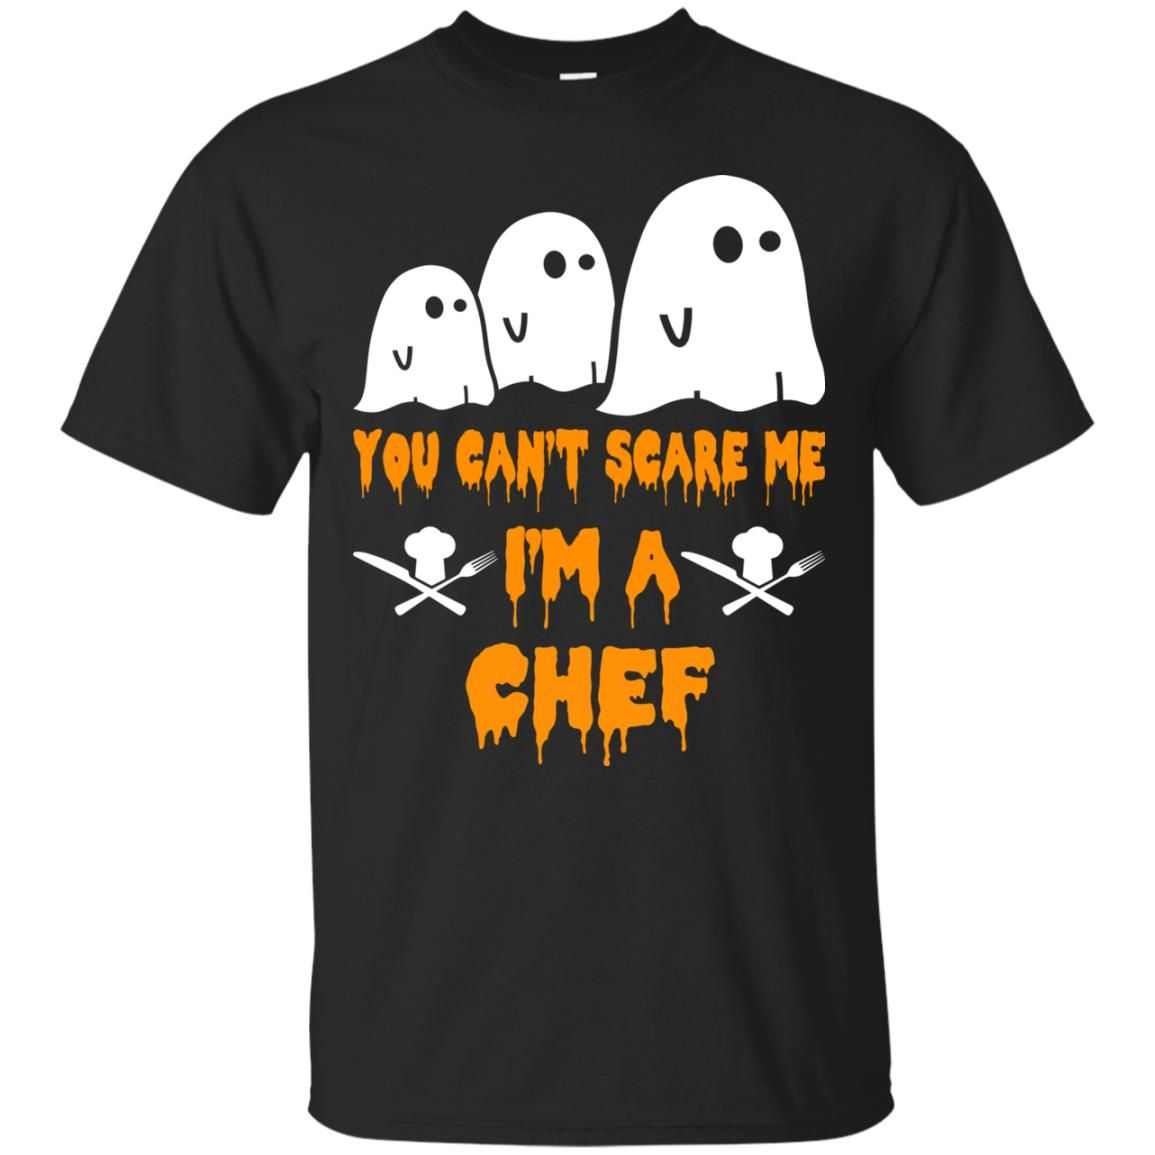 image 475 - You can't scare me I'm a Chef shirt, hoodie, tank